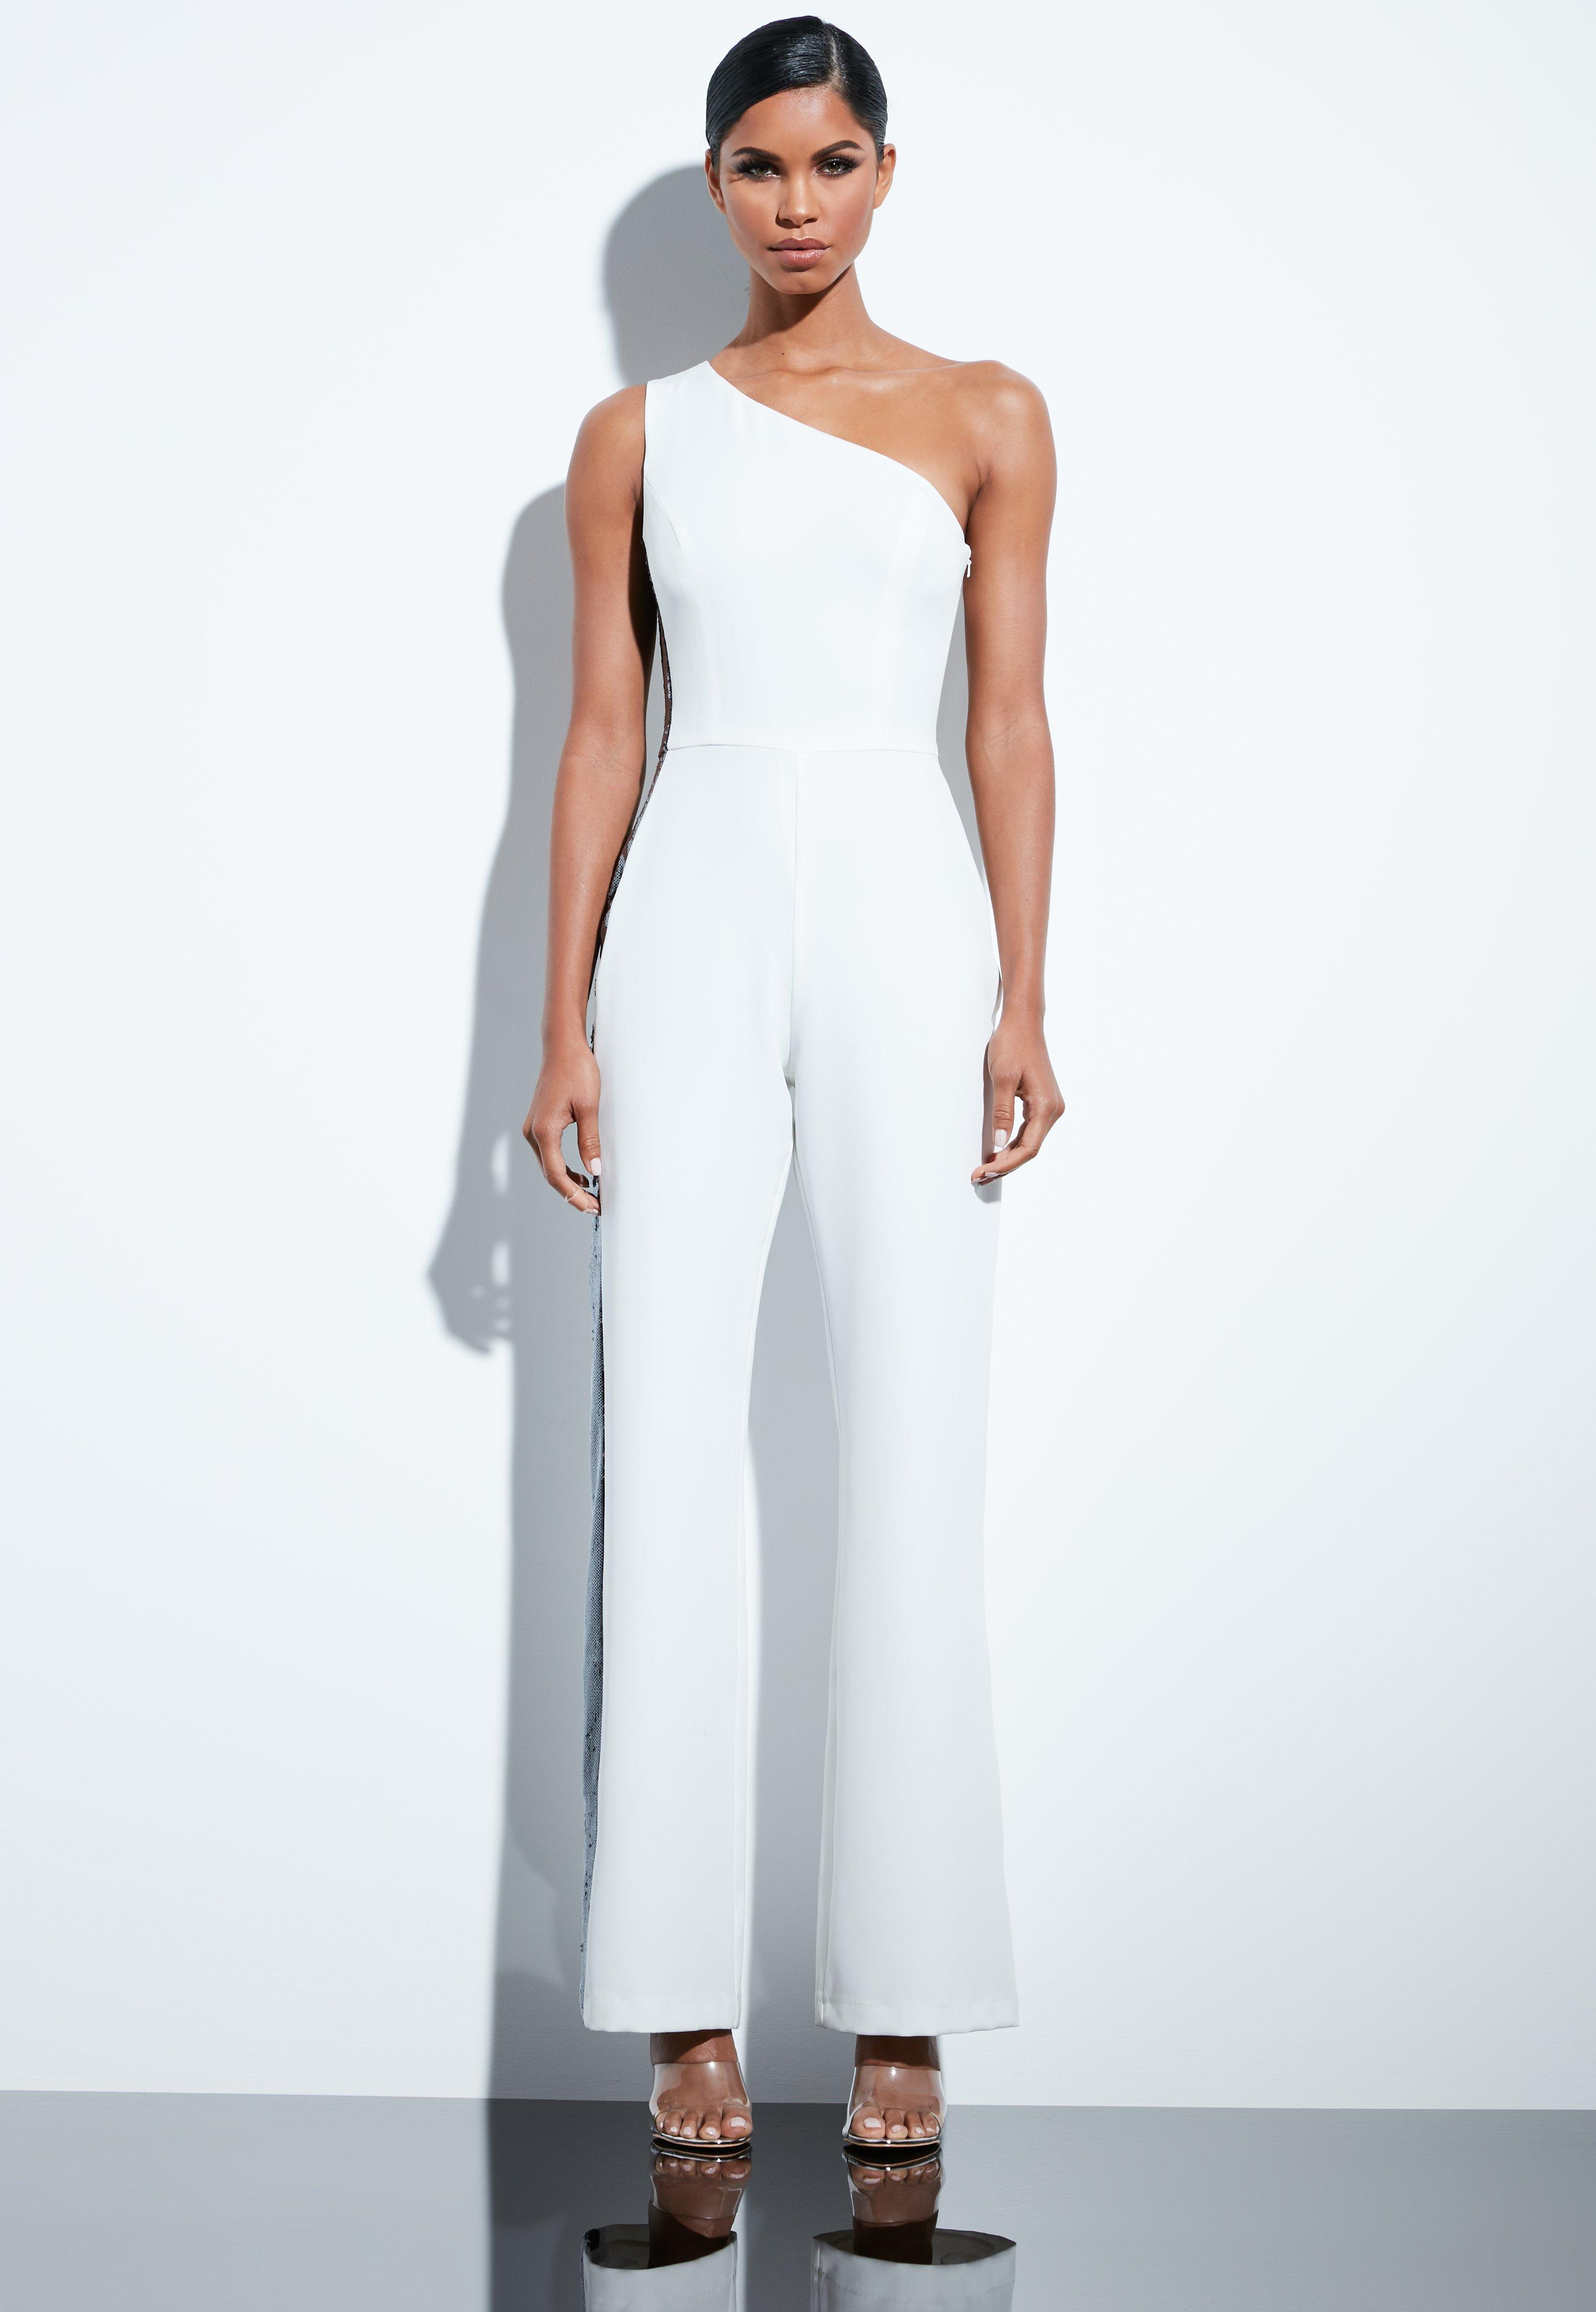 a897796ee693 Missguided - Peace + Love White Sequin Side Panel Tailored One Shoulder  Jumpsuit - Lyst. View fullscreen